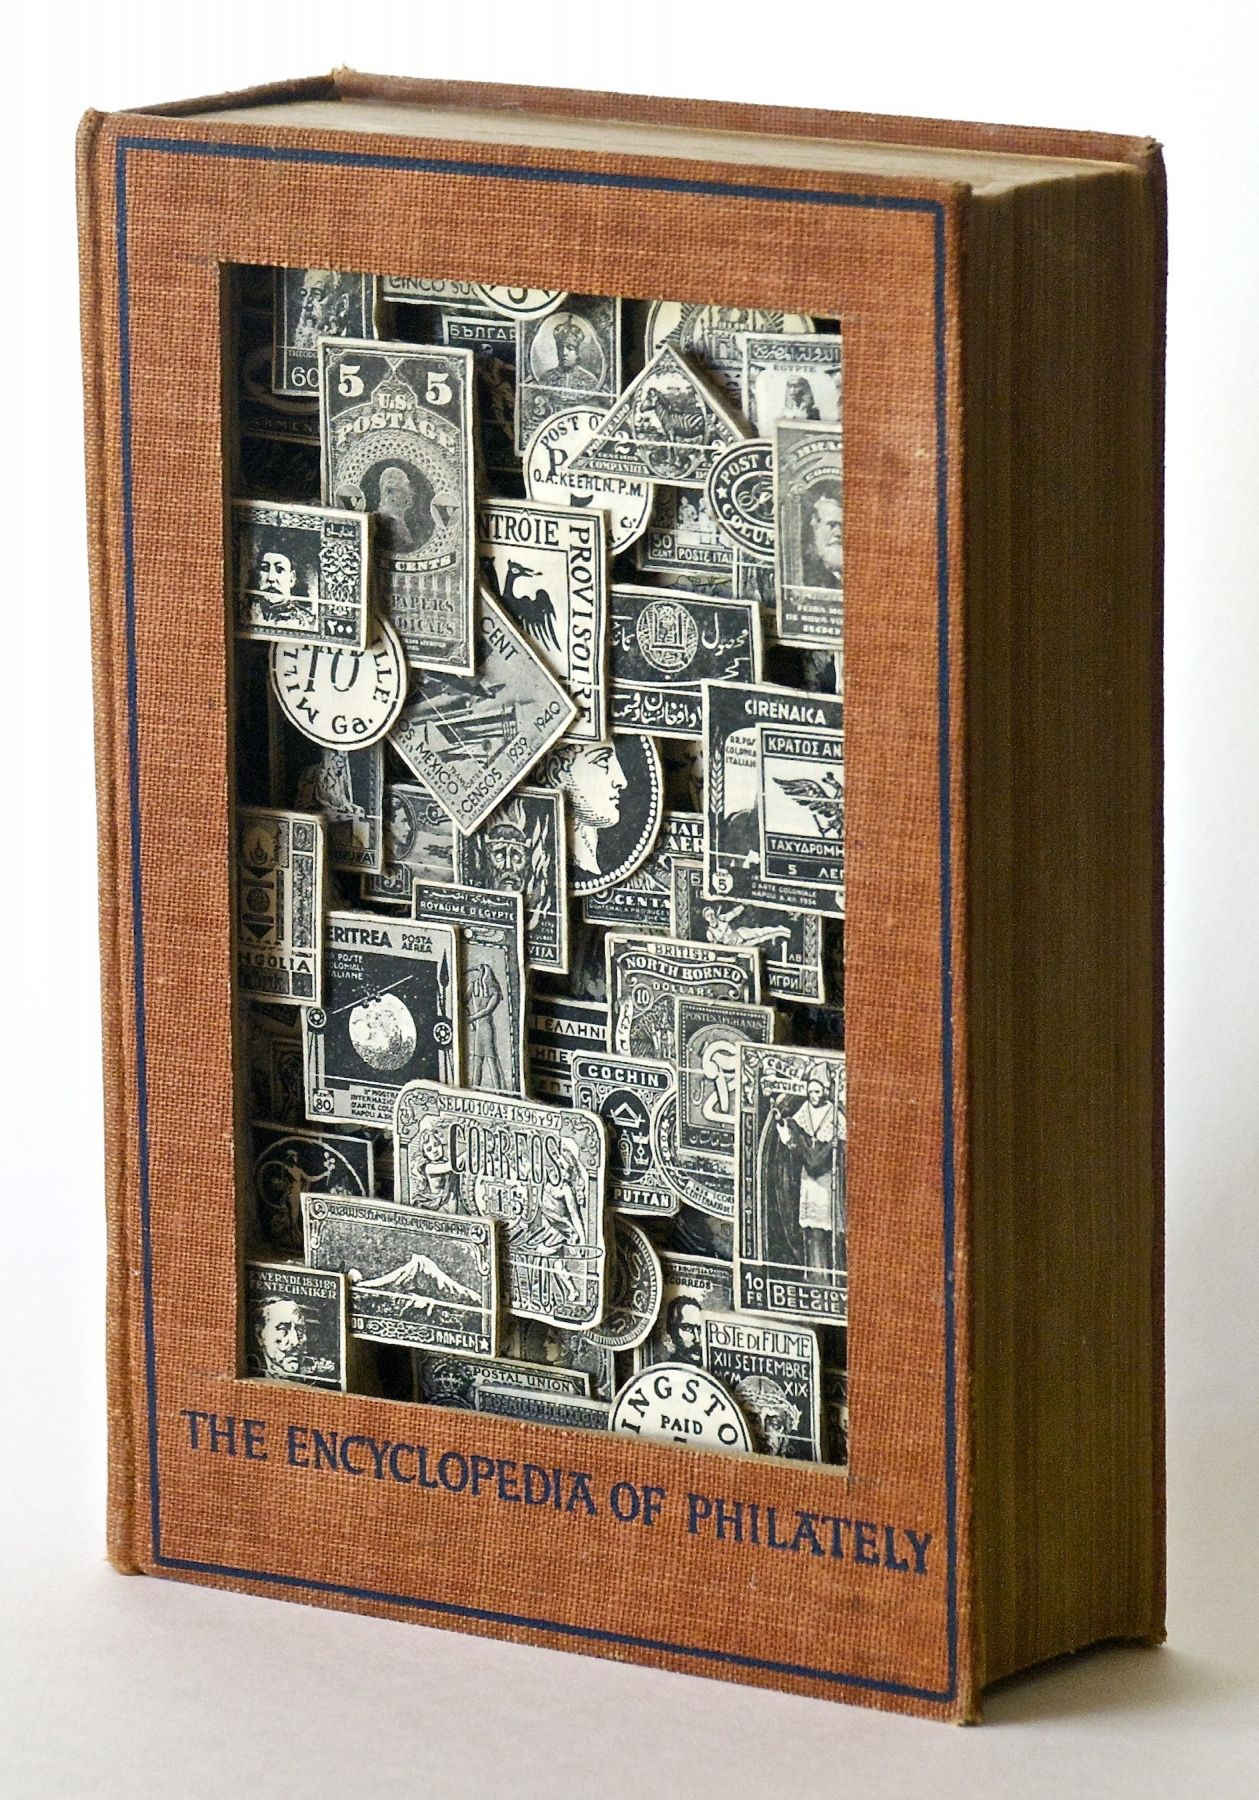 TONY DAGRADI, Encyclopedia of Philately, (front, side-view) 2018